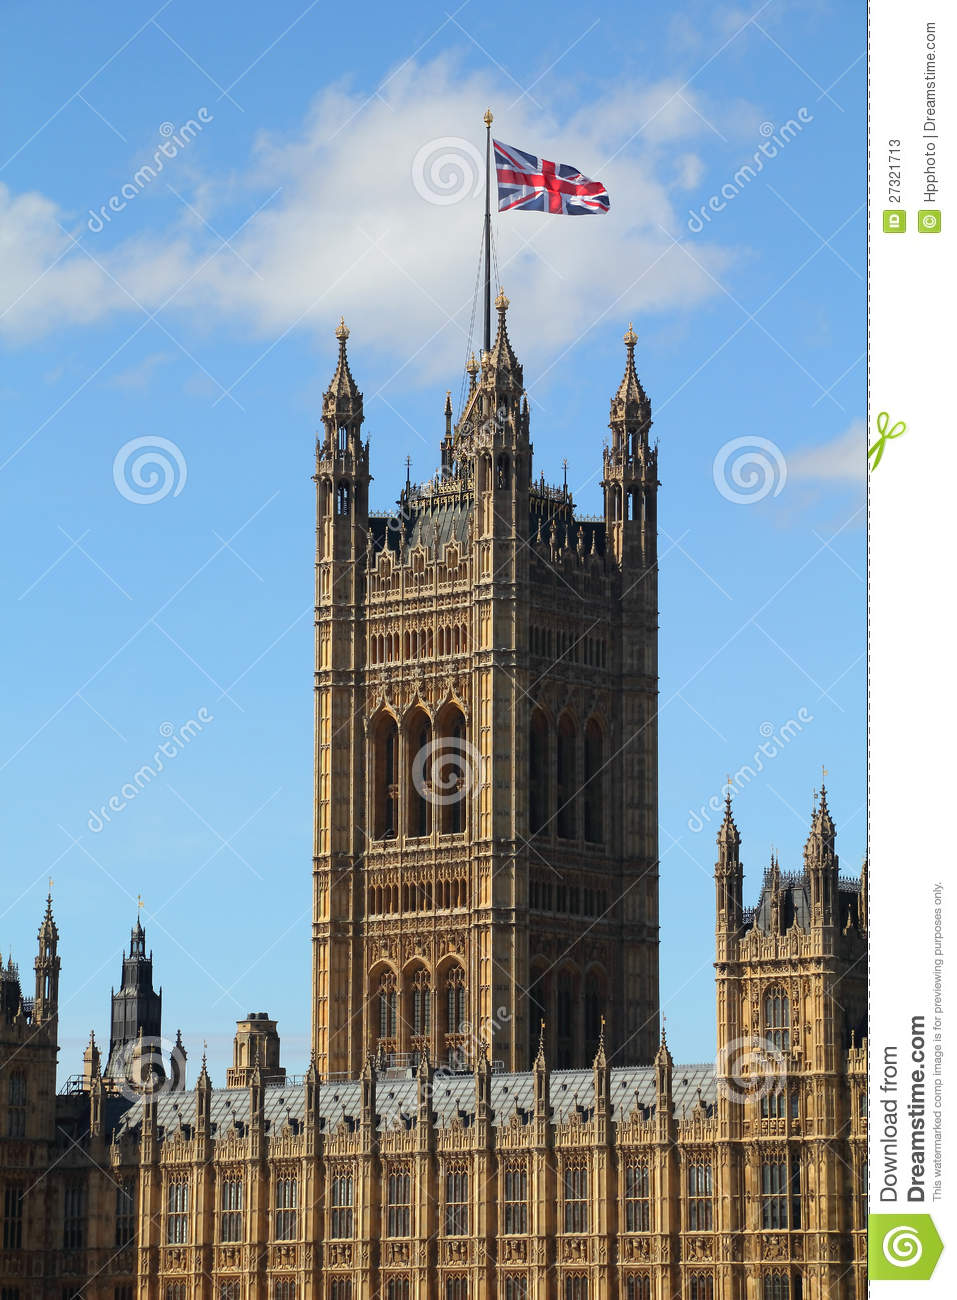 Tower of palace of westminster stock photos image 27321713 for Parliament site